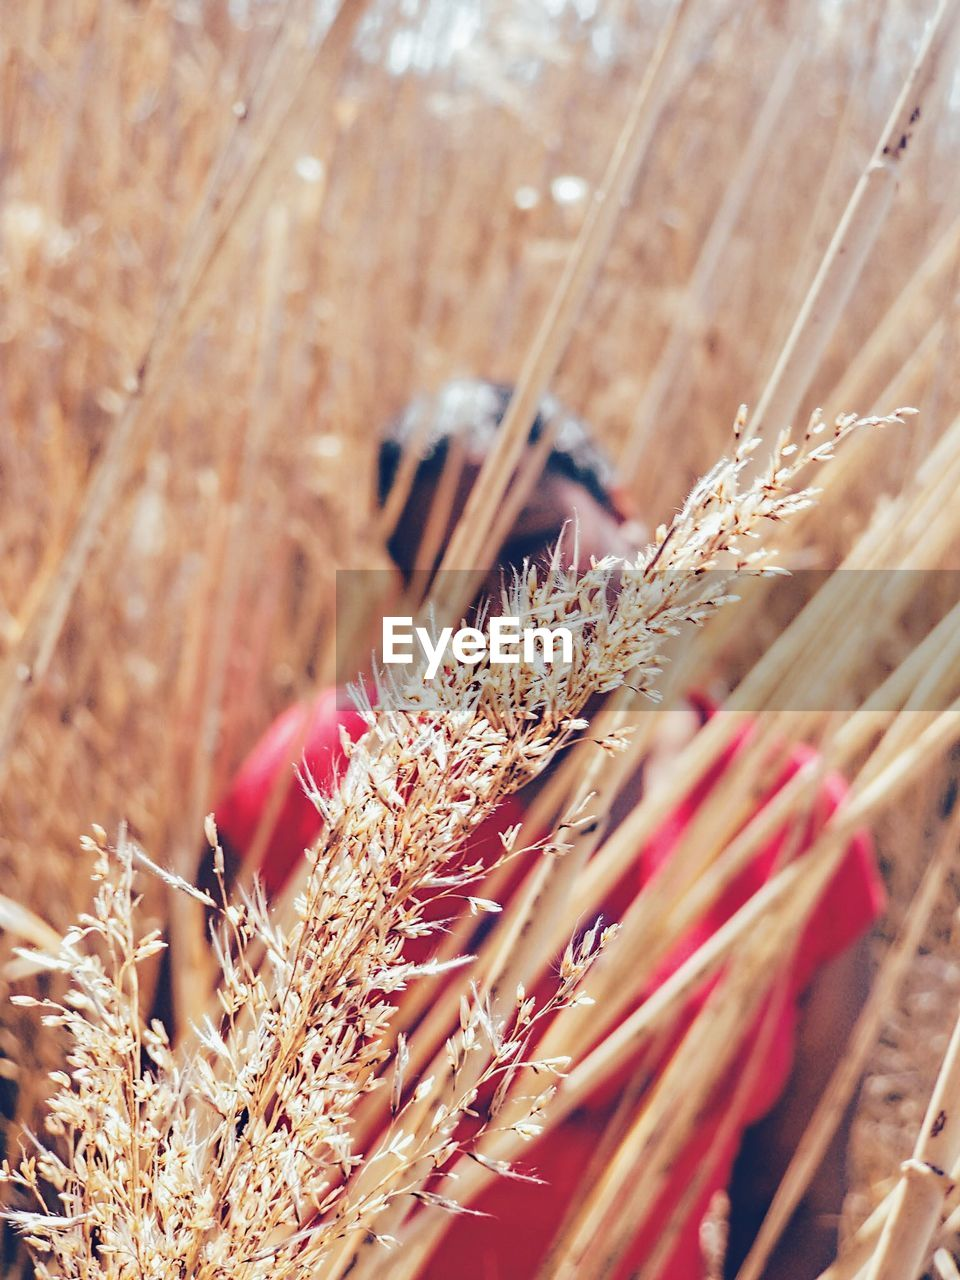 selective focus, plant, close-up, nature, day, no people, red, wood - material, sunlight, growth, outdoors, large group of objects, flower, dry, crop, agriculture, still life, focus on foreground, beauty in nature